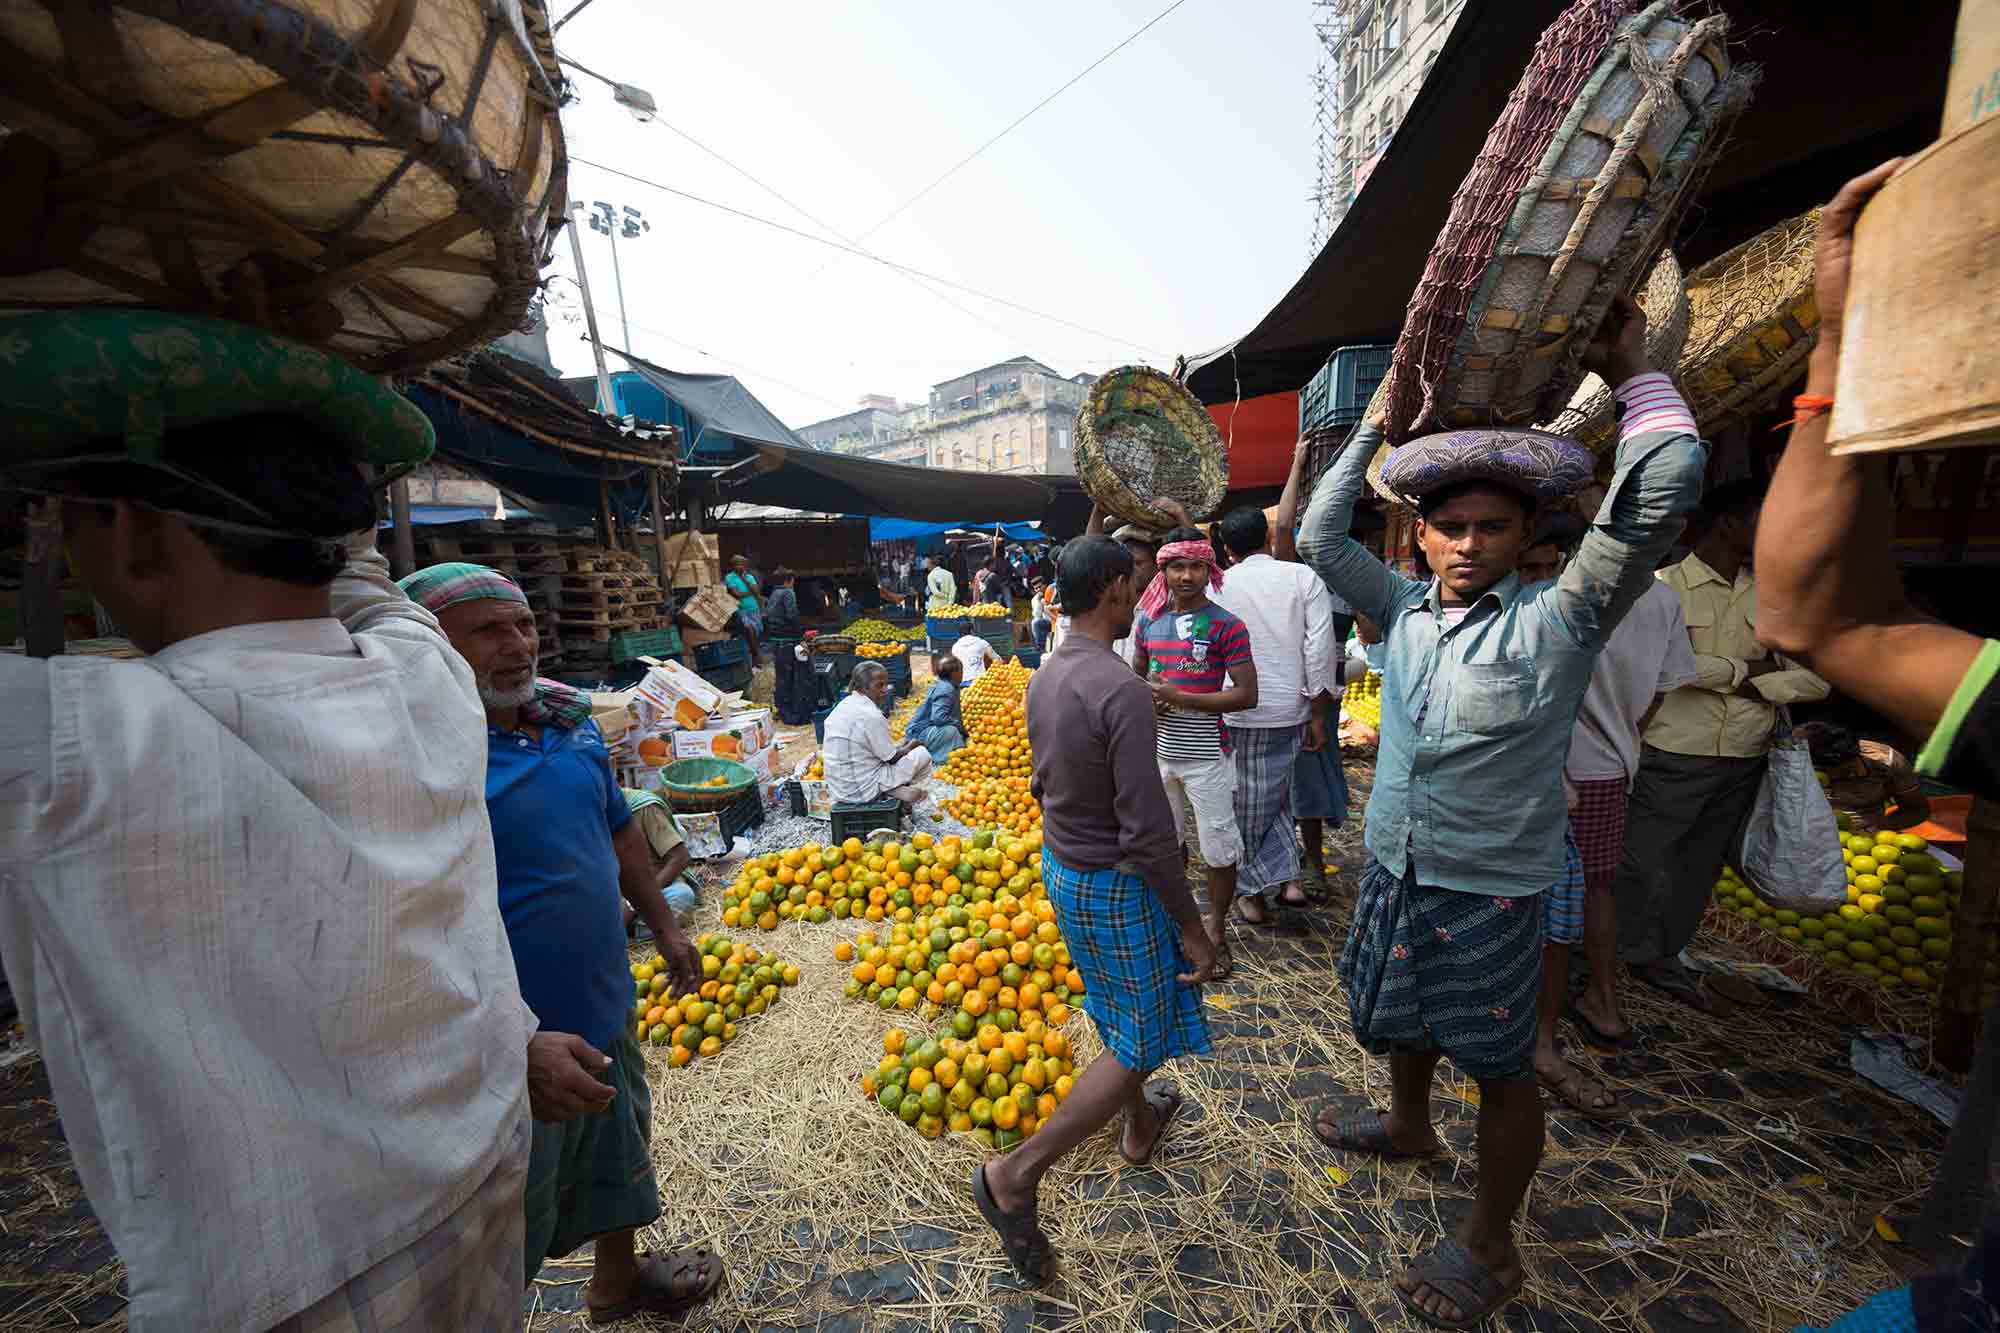 Mechhua-Fruit-Market-kolkata-india-1